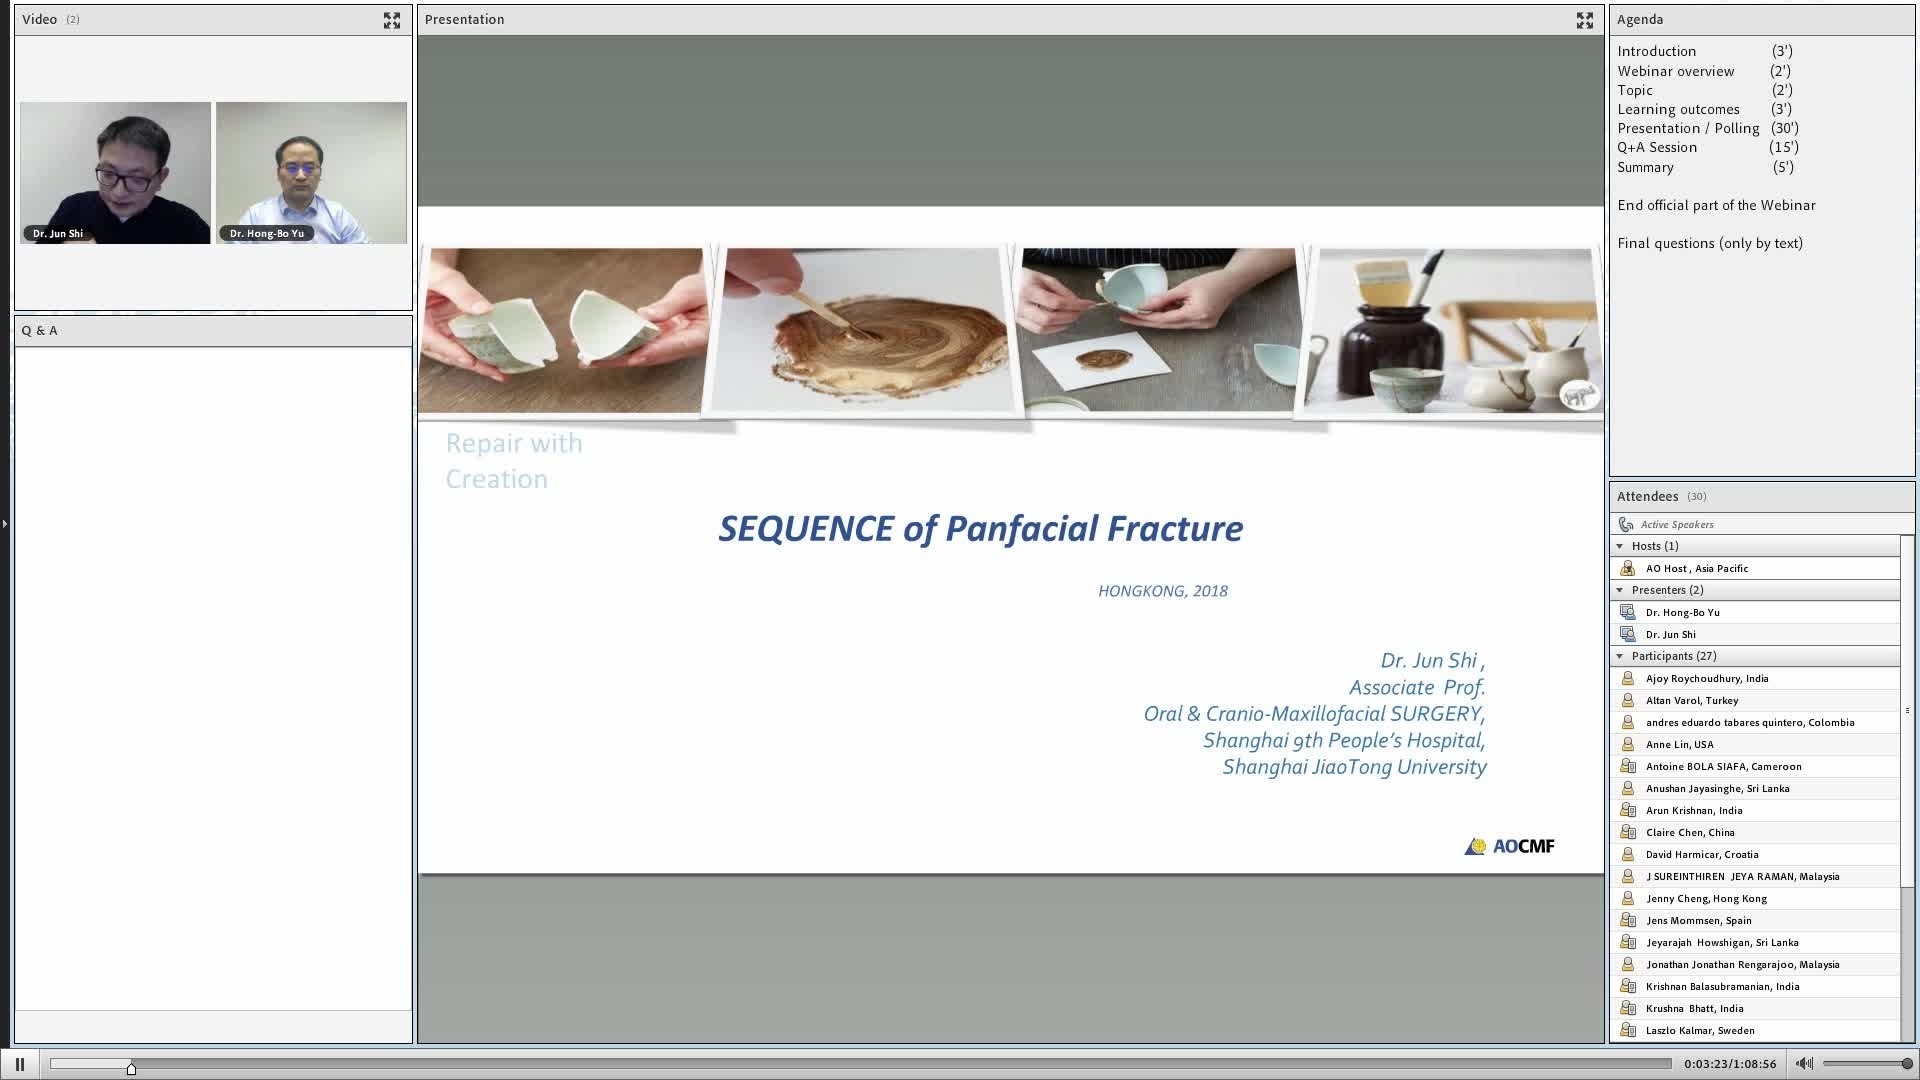 Webinars And Webcasts Using Sequencers Plcsnet Interactive Q A Jun Shi Is Presenting Live Webinar About Panfacial Fractures Sequencing